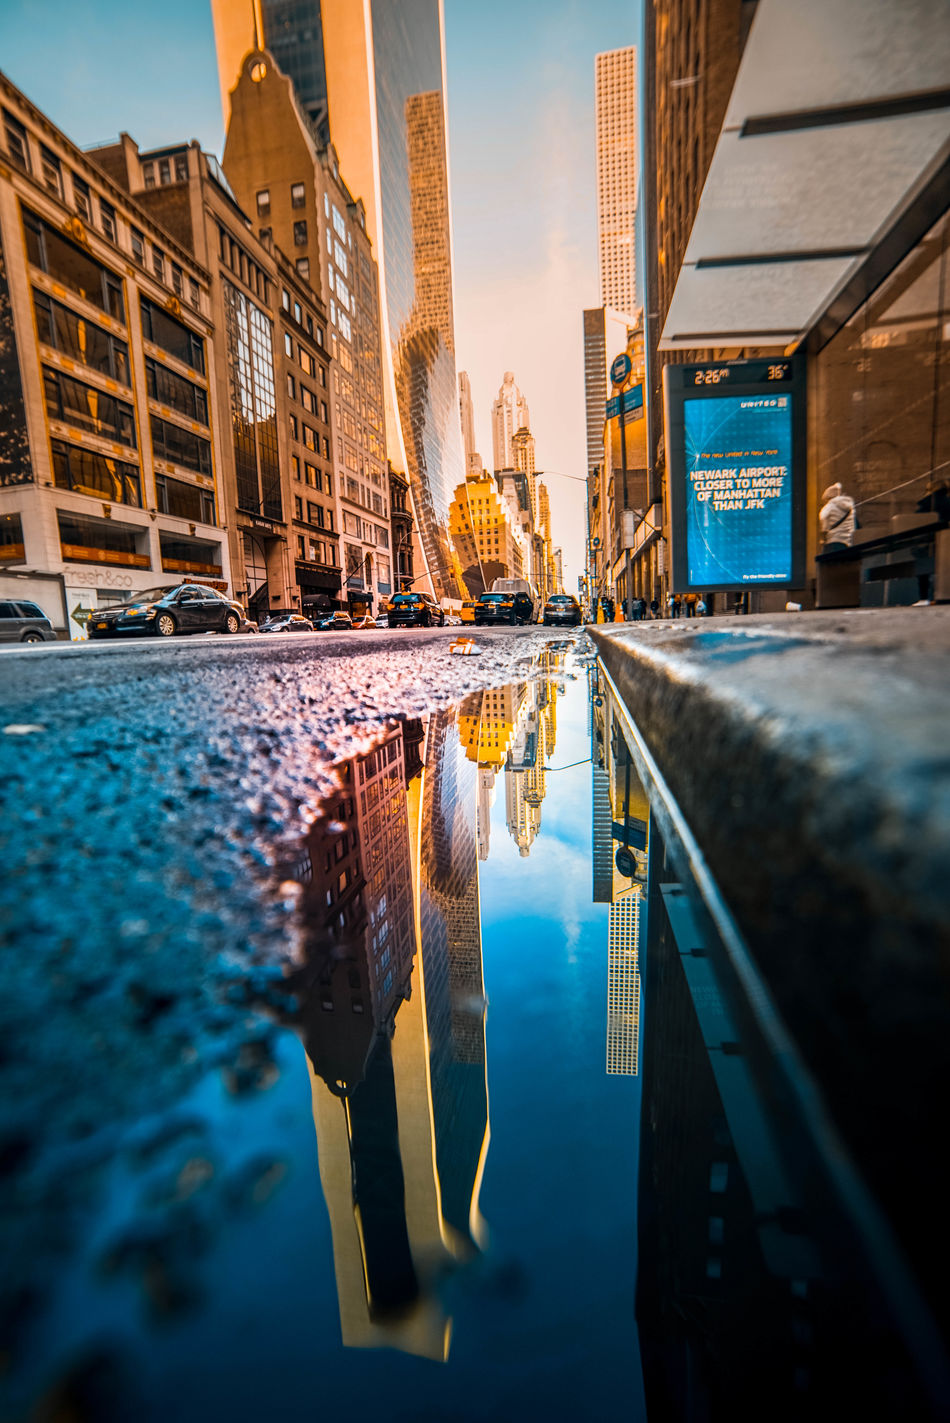 Street of New York Architecture Building Exterior Built Structure City City Life Cityscape Colorful Day EyeEm Best Shots EyeEm Gallery Modern Architecture Outdoors Water Reflection Sky Skyscraper Sonyalpha Sunset Travel Urban Skyline Streetphotography Travel Destinations Vanishing Point